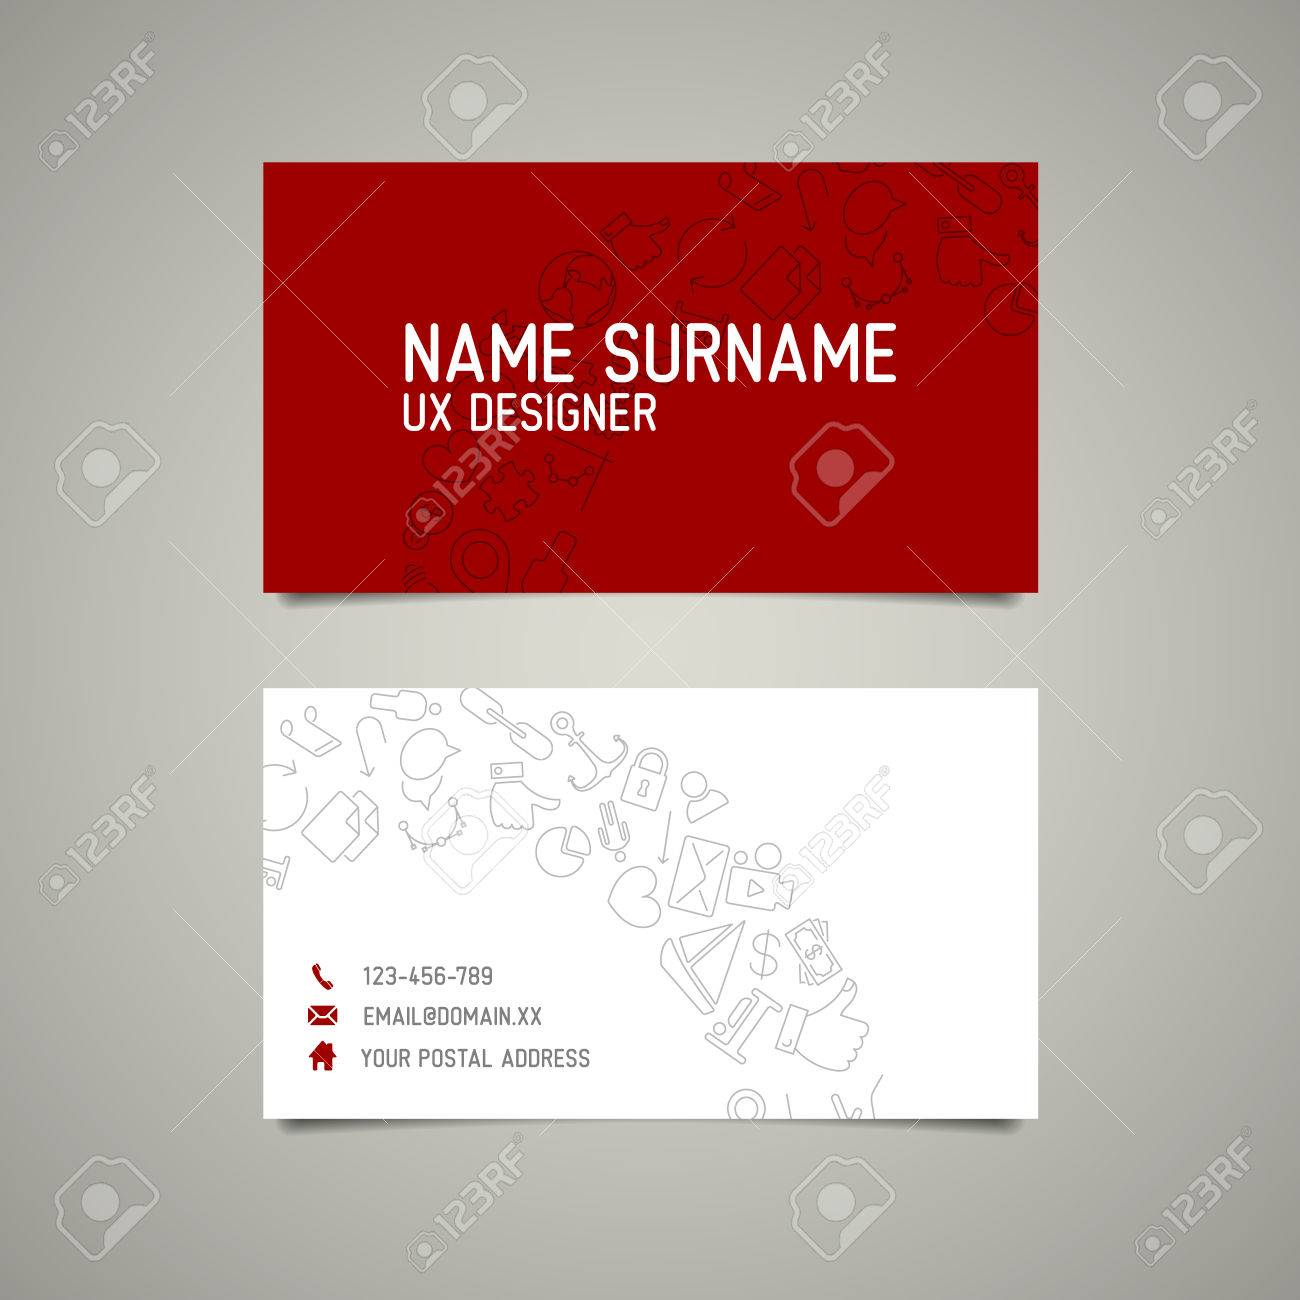 Avery label business card template 100 images business card avery label business card template 100 business card label template taco traditional mexican magicingreecefo Images